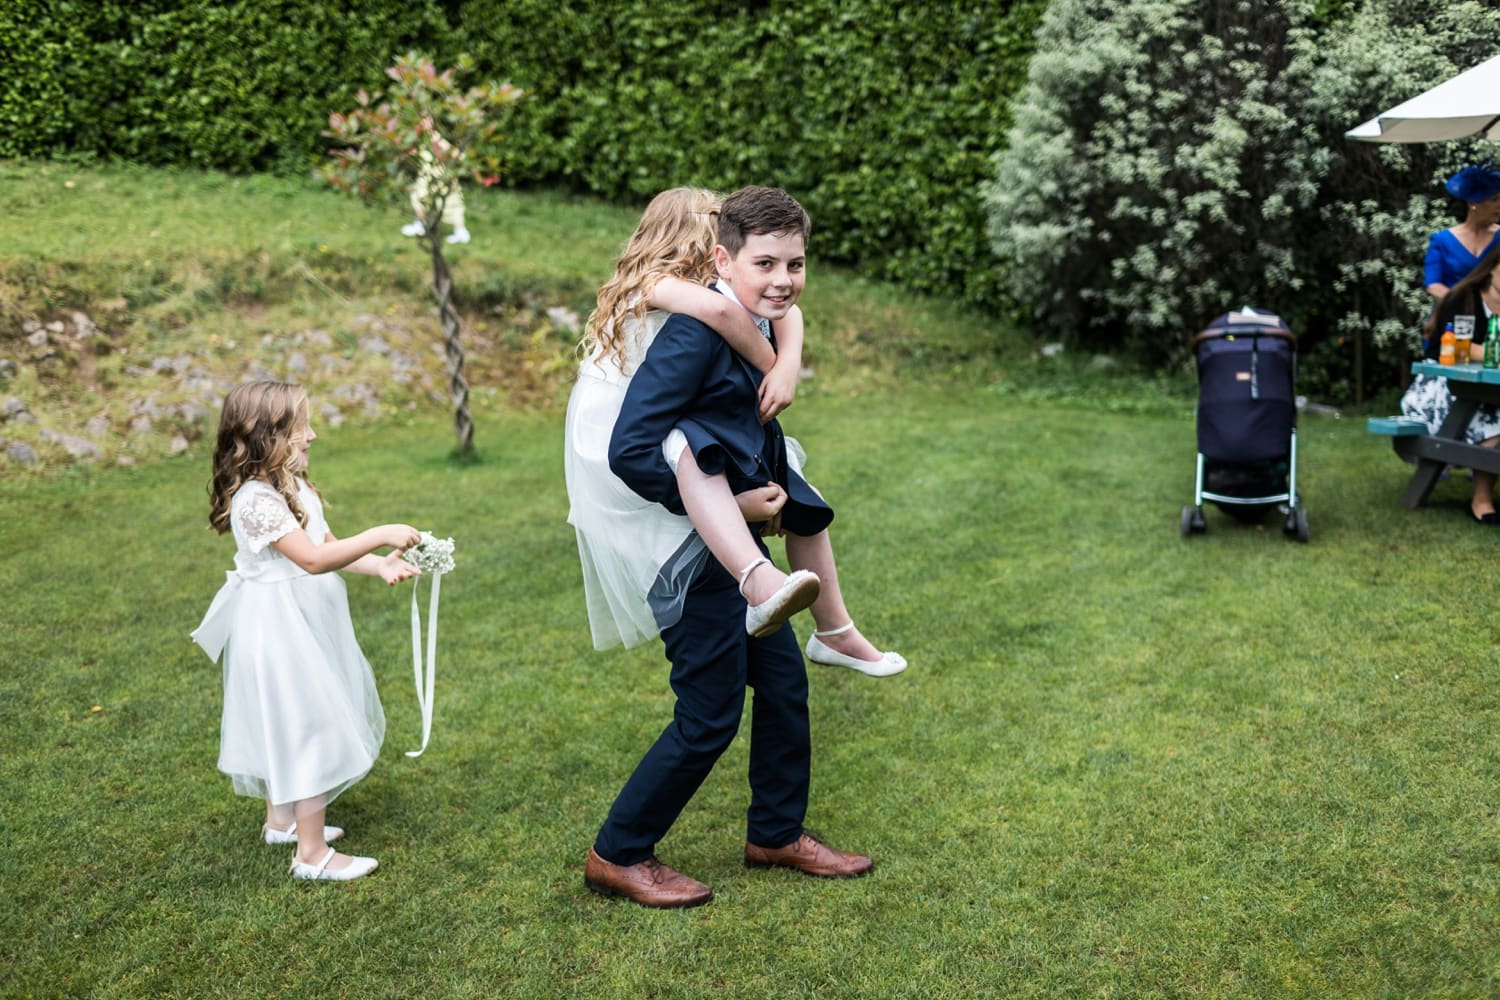 Piggy bag ride at wedding